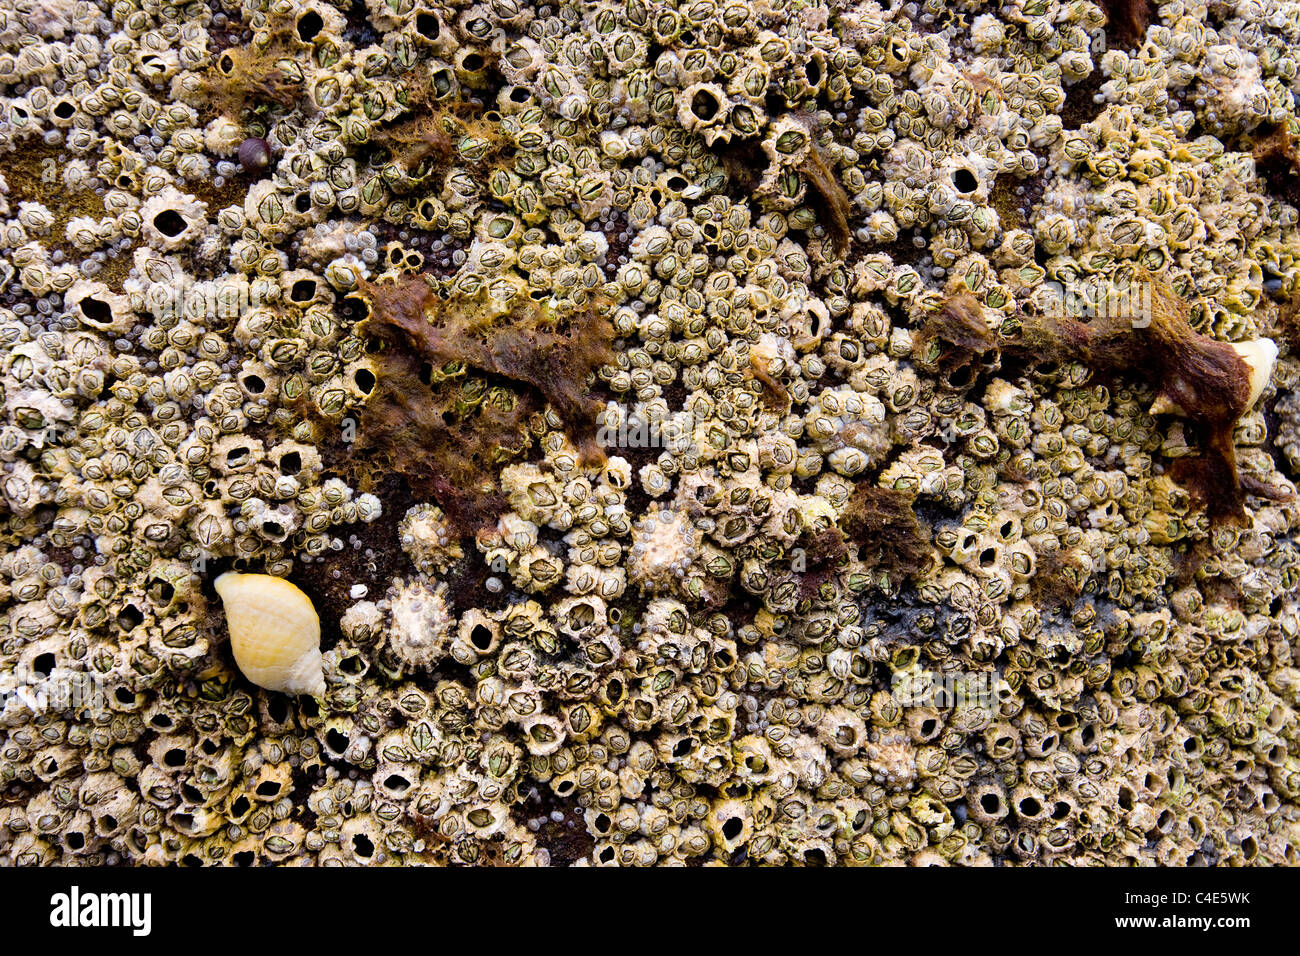 Barnacles, Limpets and Snails at Runswick Bay, East Coast Yorkshire, England Stock Photo